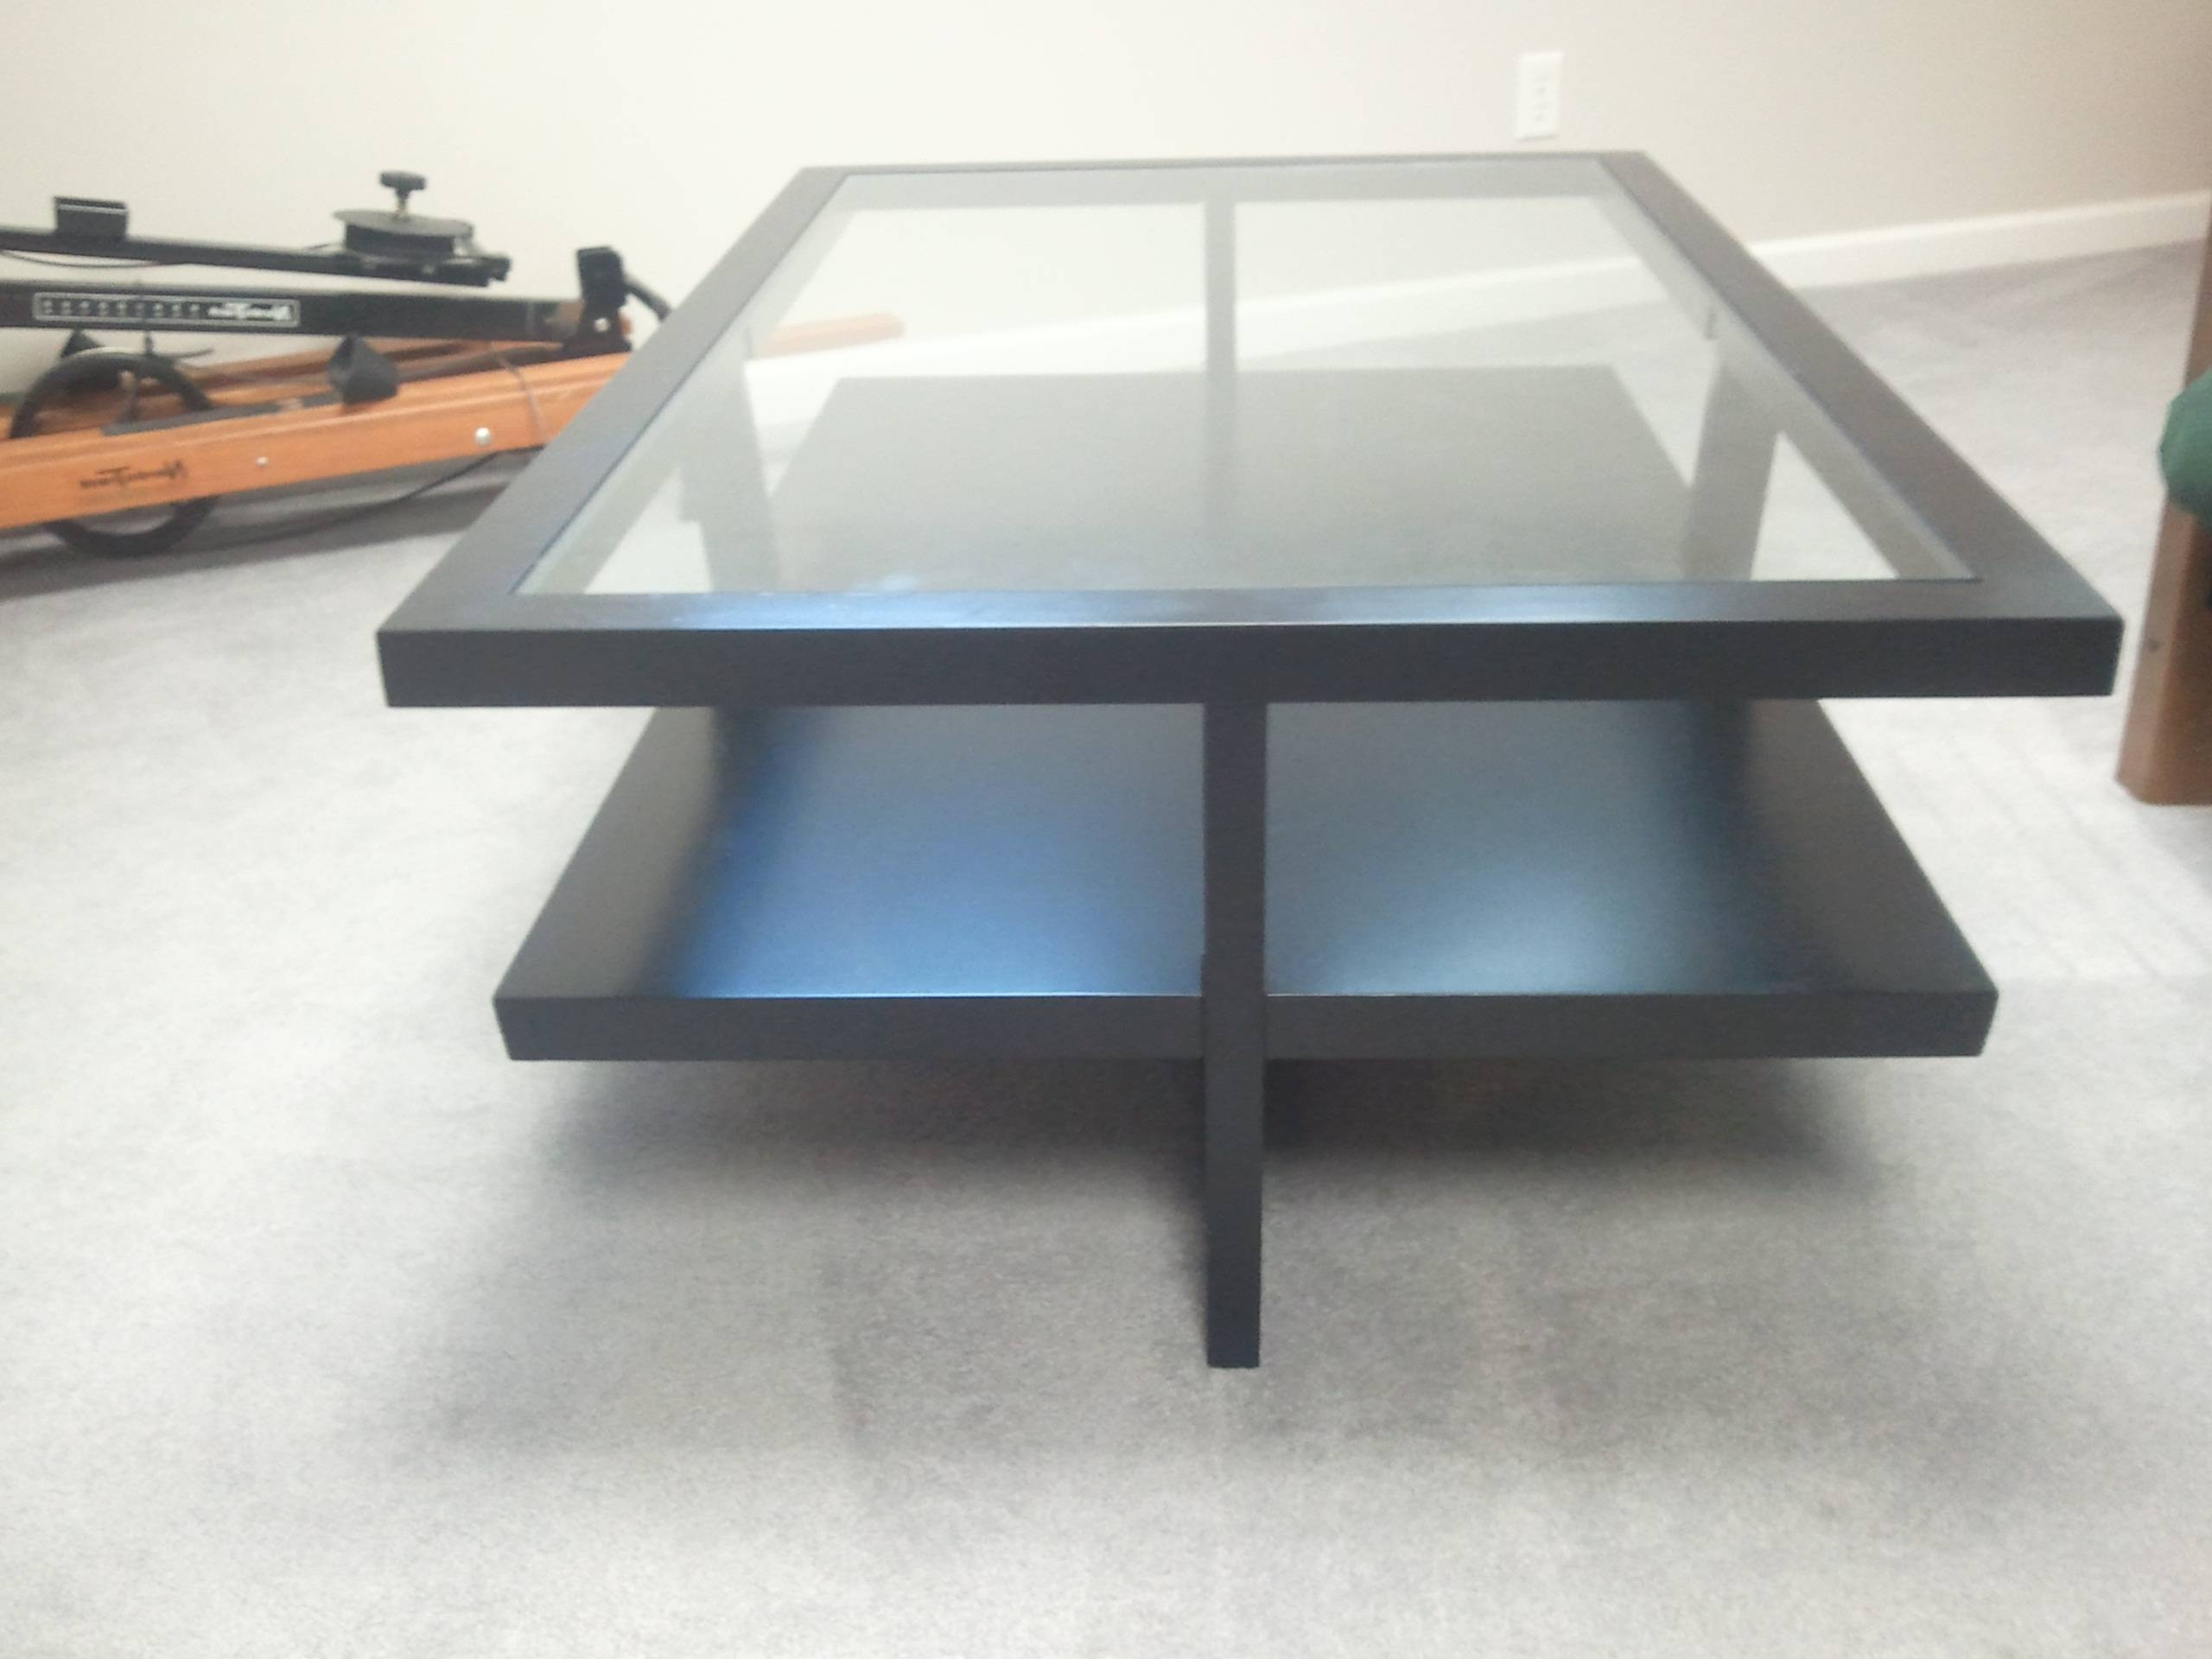 Remarkable Glass Coffee Table Modern – Metal And Glass Coffee for Round High Gloss Coffee Tables (Image 18 of 30)